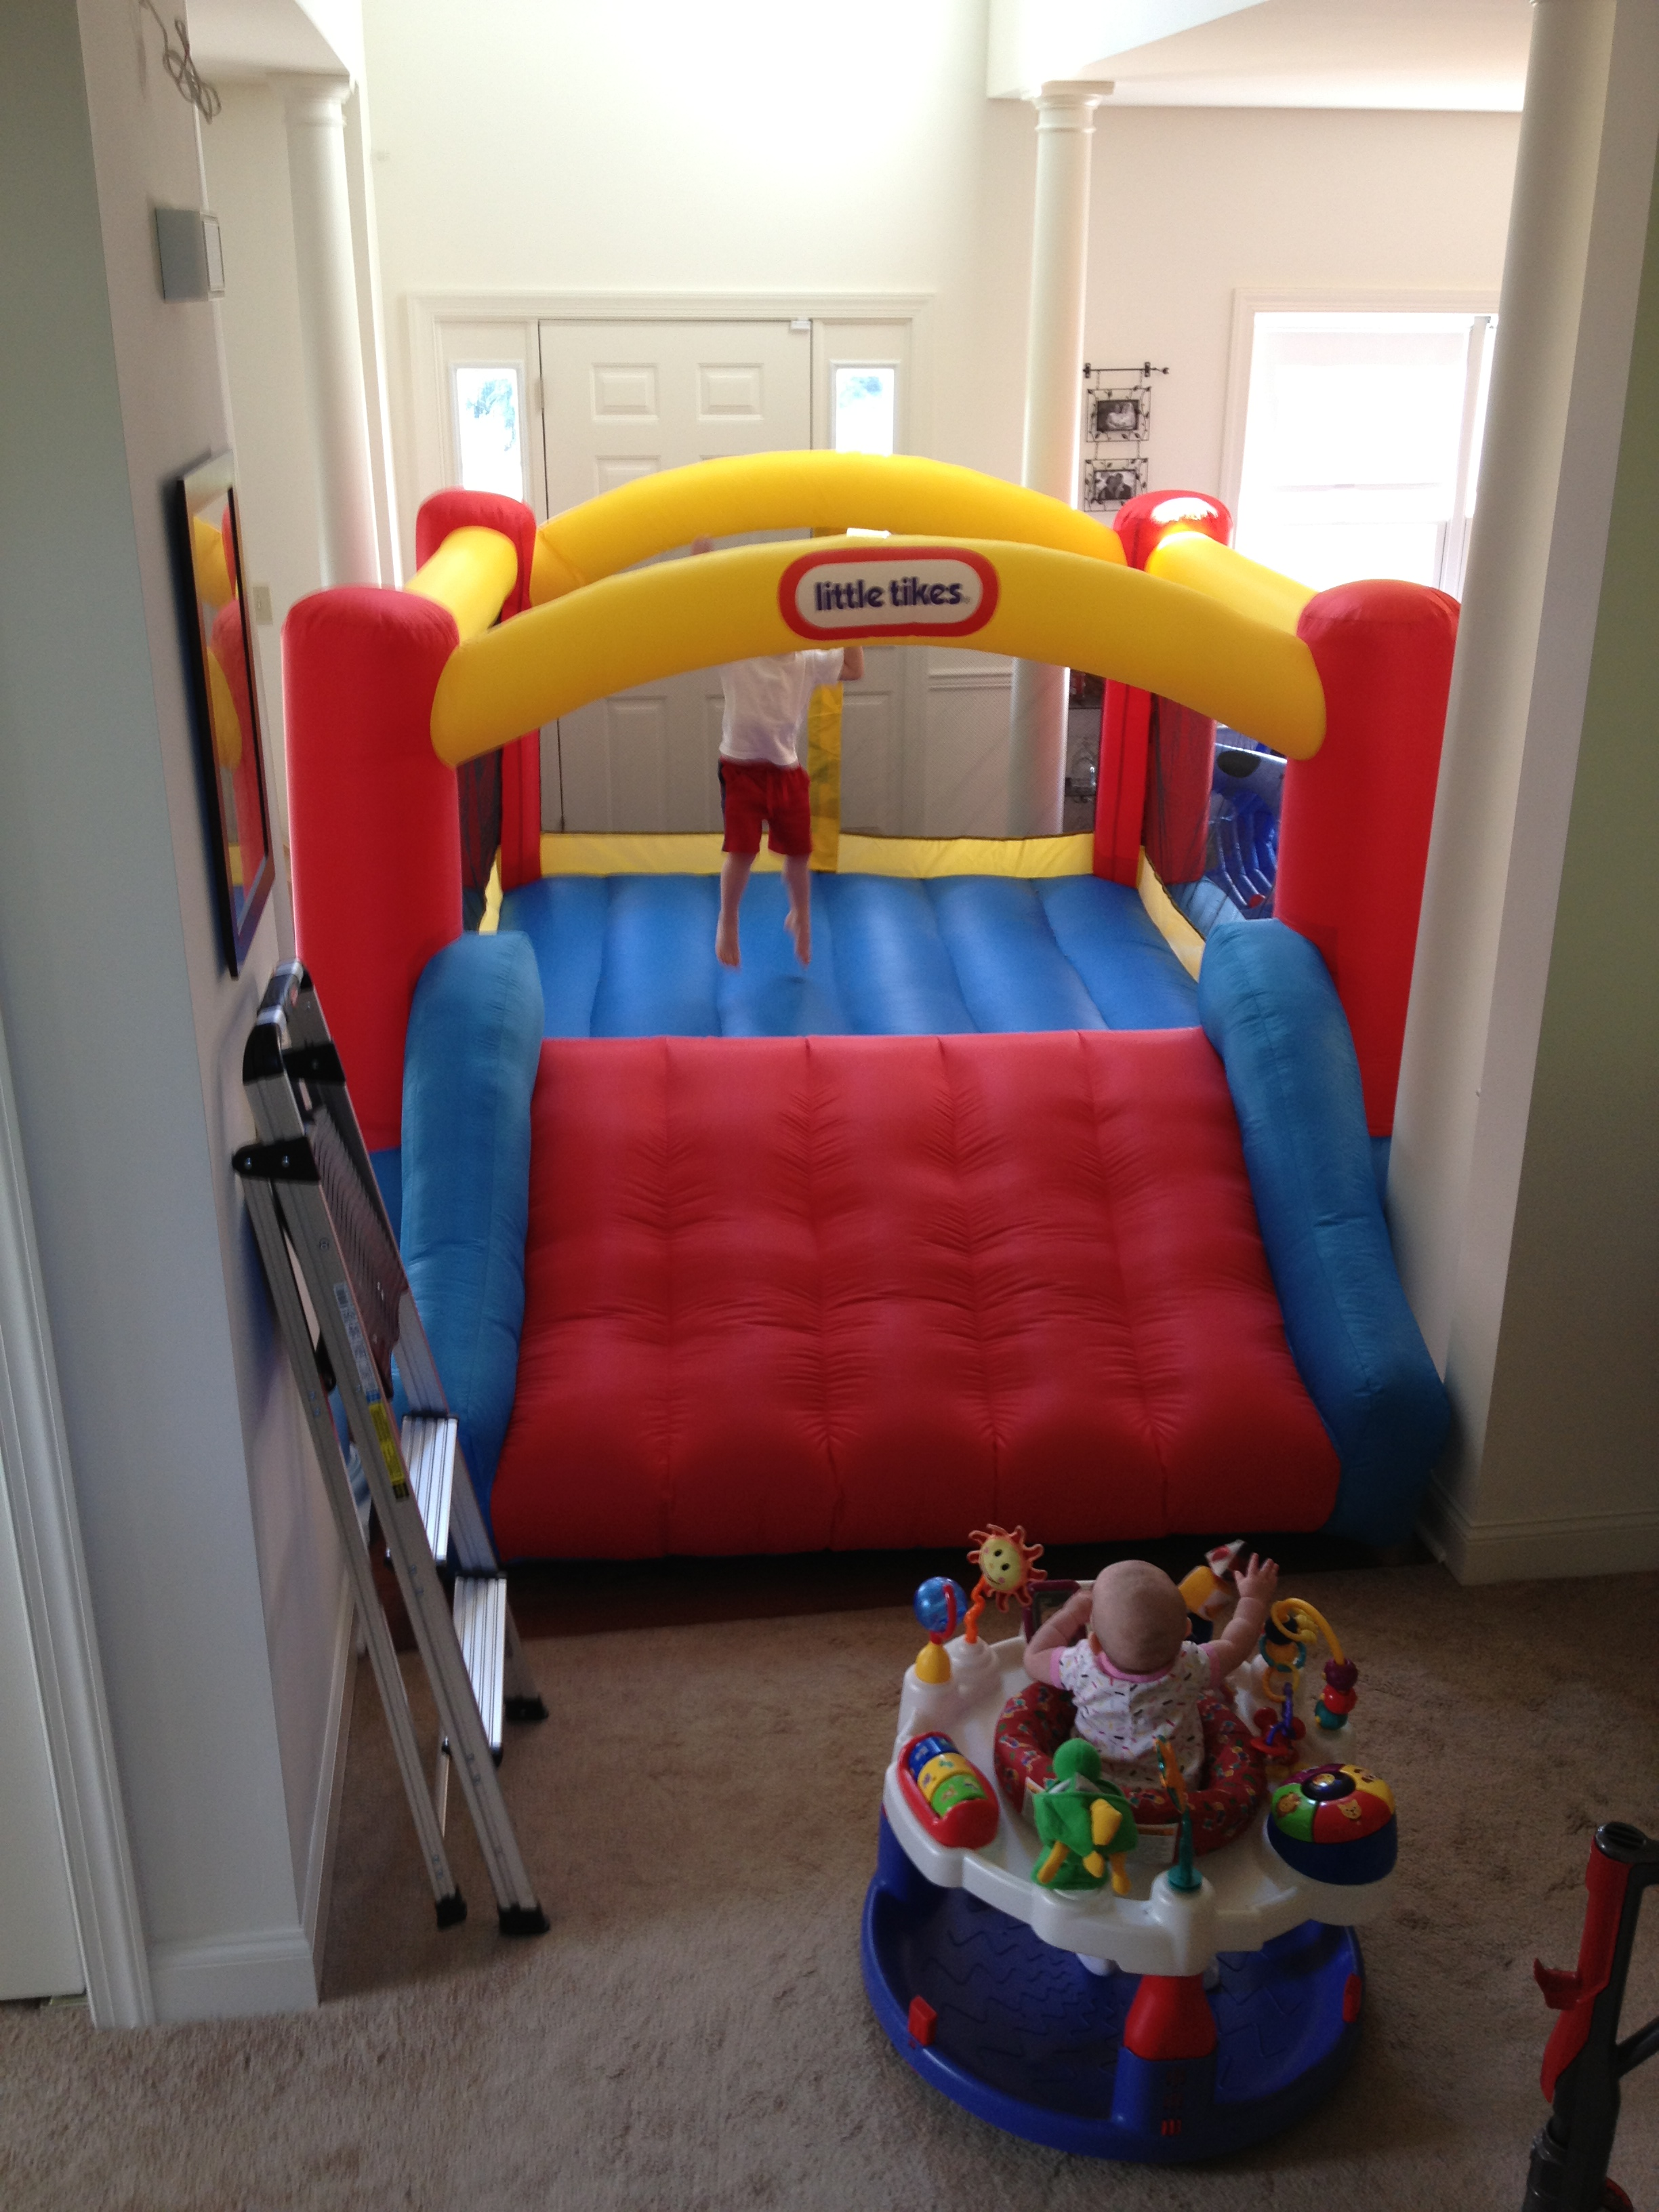 Charming Little Tikes Bounce House Made Of Caoutchouc With Slide For Kids Play Room Ideas